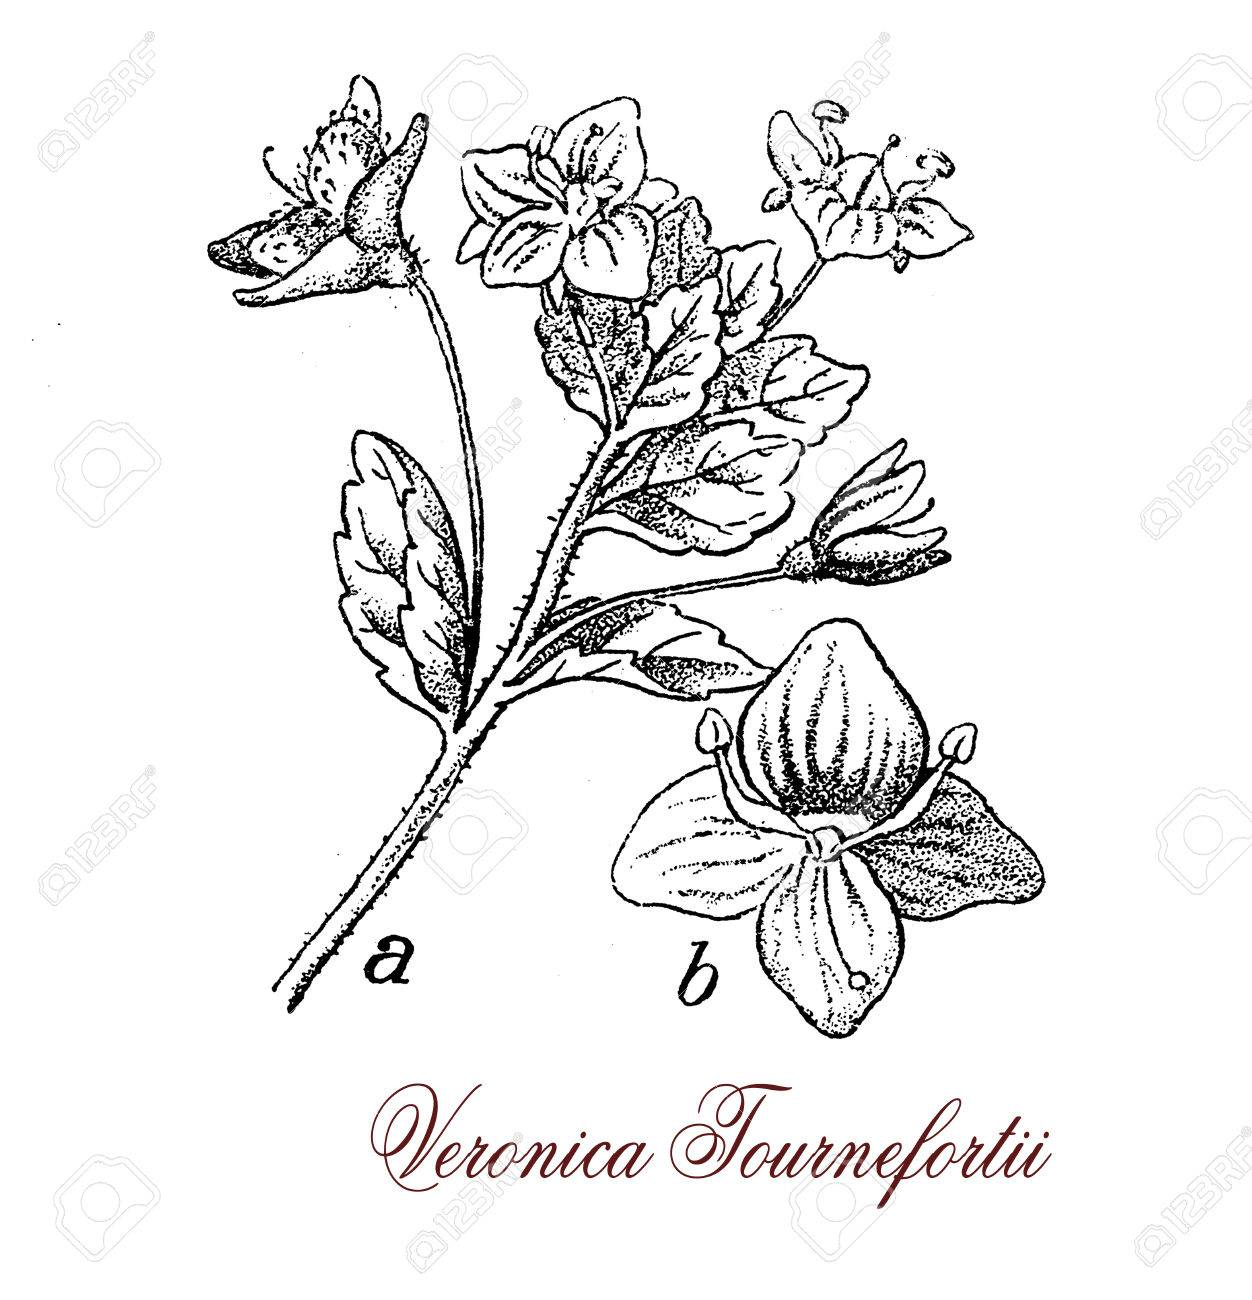 Veronica persica flowering plant with small sky blue flowers stock photo veronica persica flowering plant with small sky blue flowers with dark stripes and white centers and heart shaped fruitsvintage engraving mightylinksfo